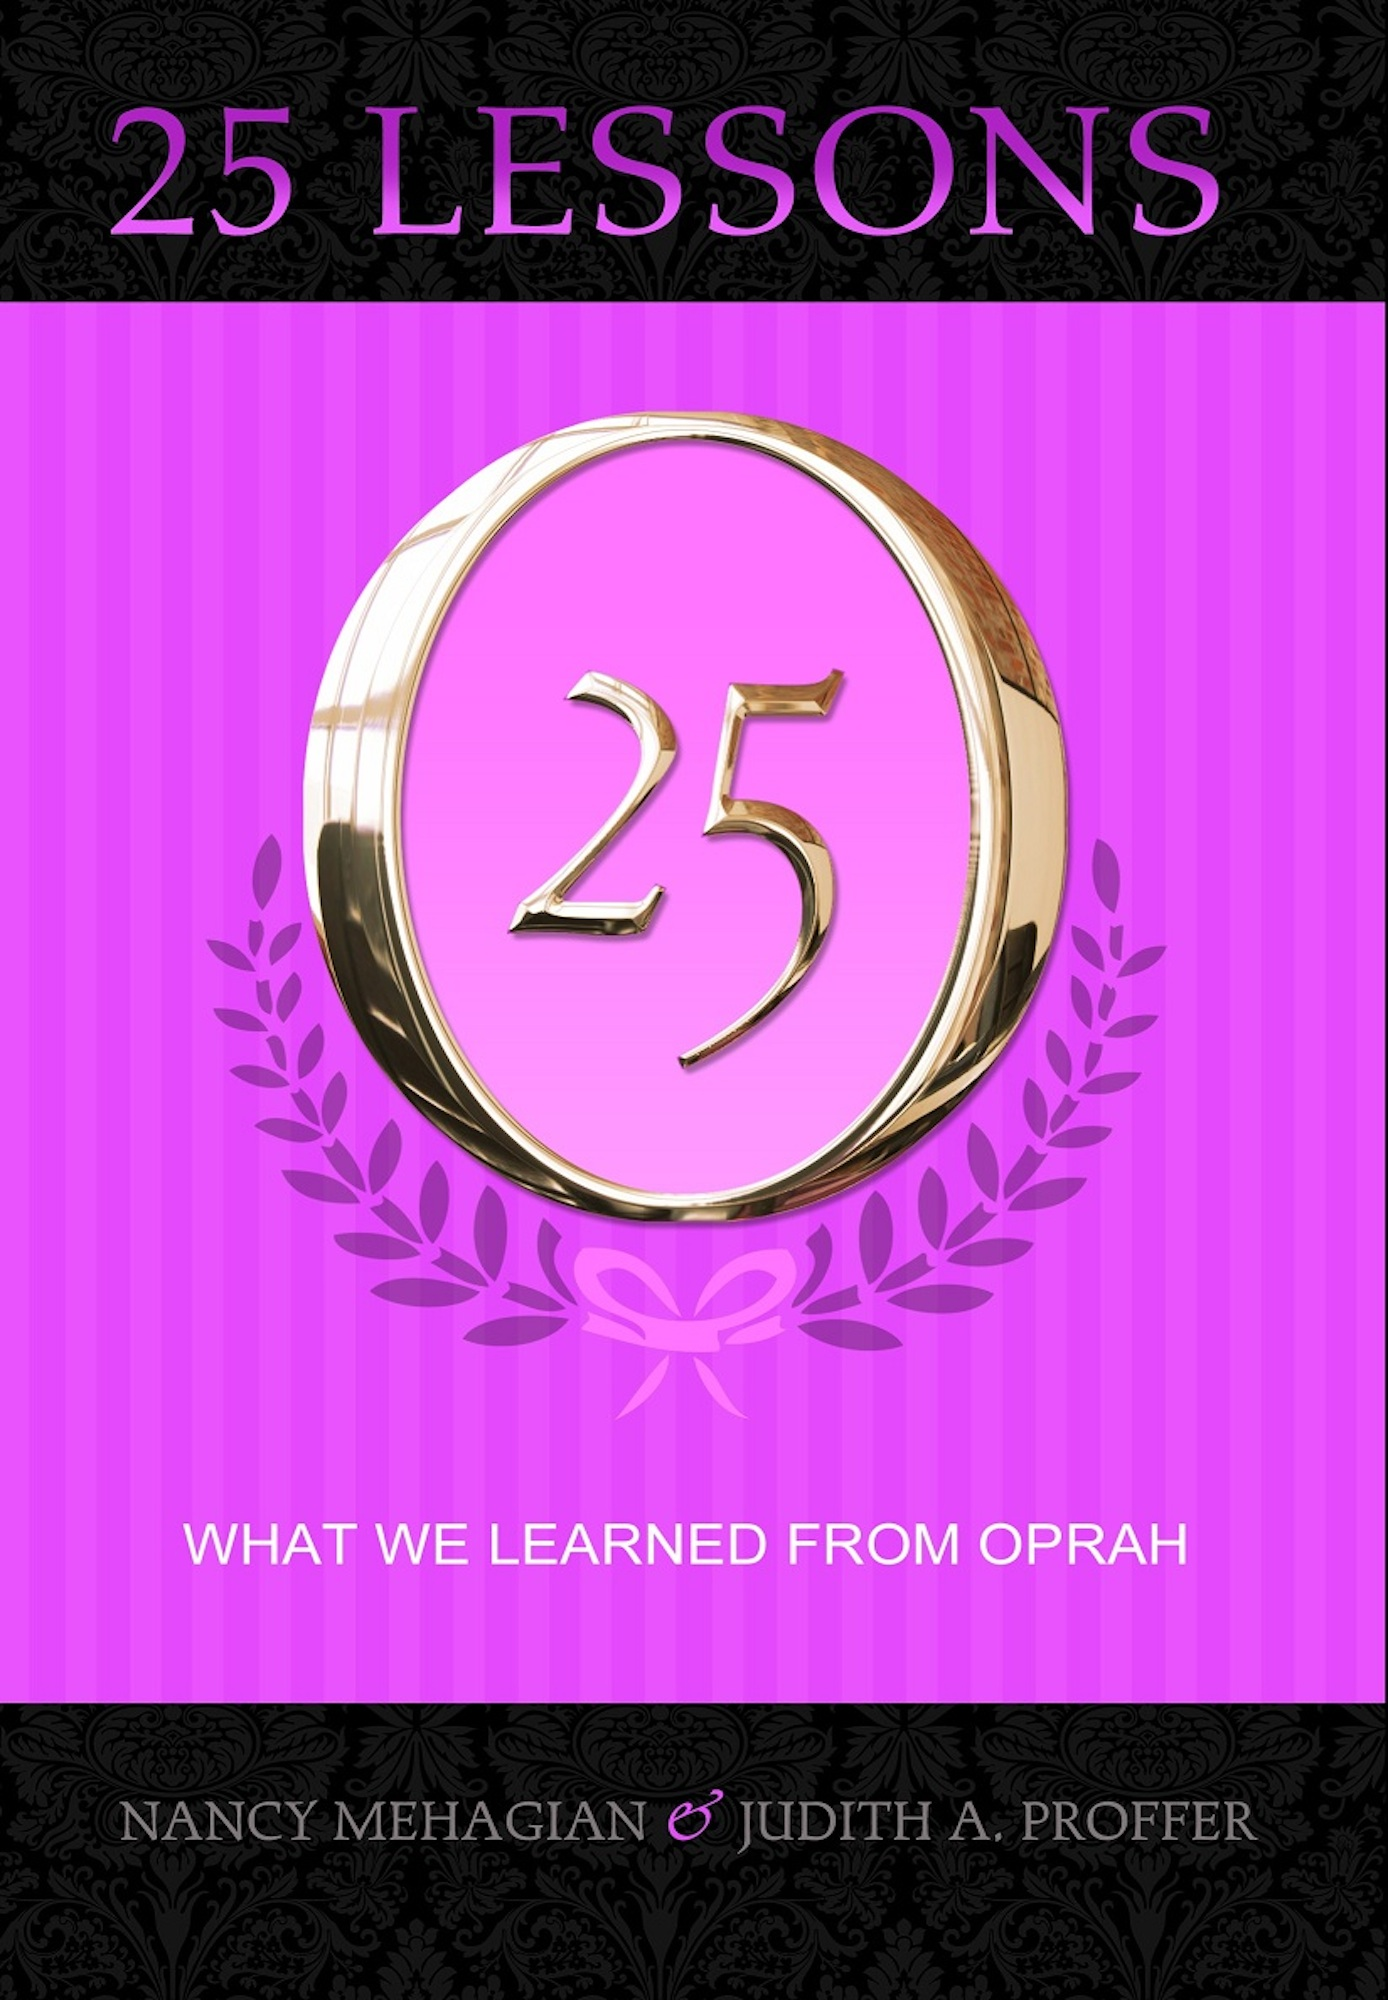 25 Lessons: What We Learned from Oprah By: Judith A. Proffer